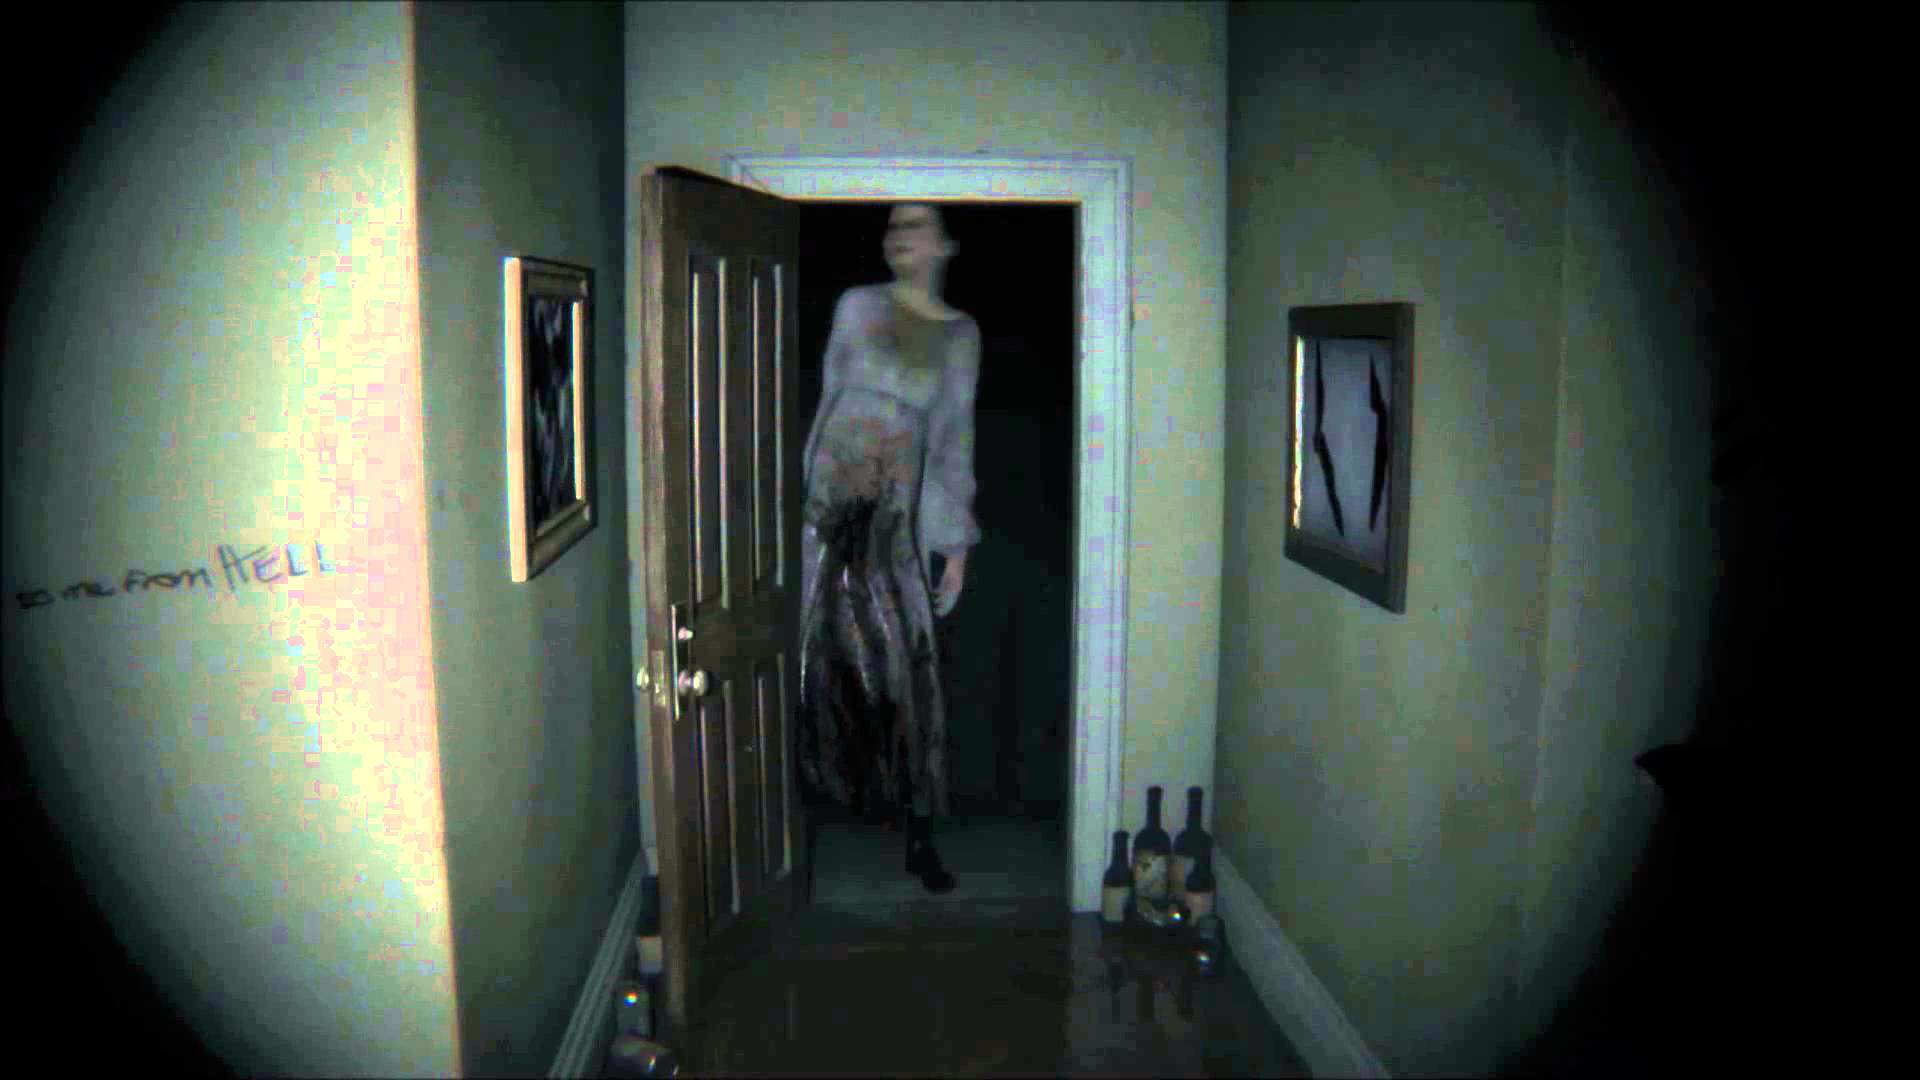 Resident Evil 7 Boss Speaks Out On Cancellation Of Silent Hills maxresdefault 1 8